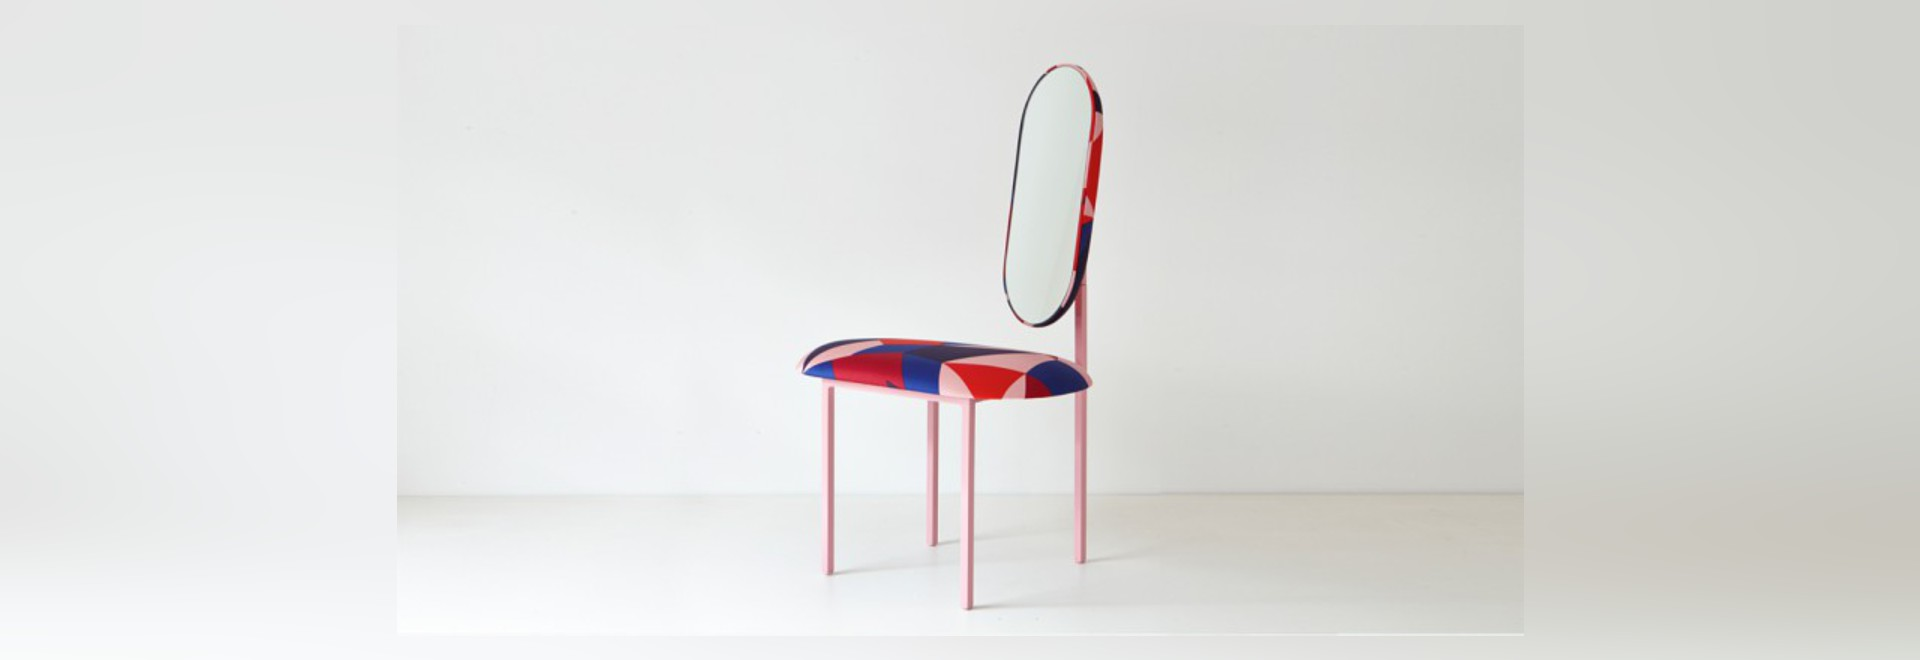 Exceptionnel MIRROR CHAIR BY NINA TOLSTRUP